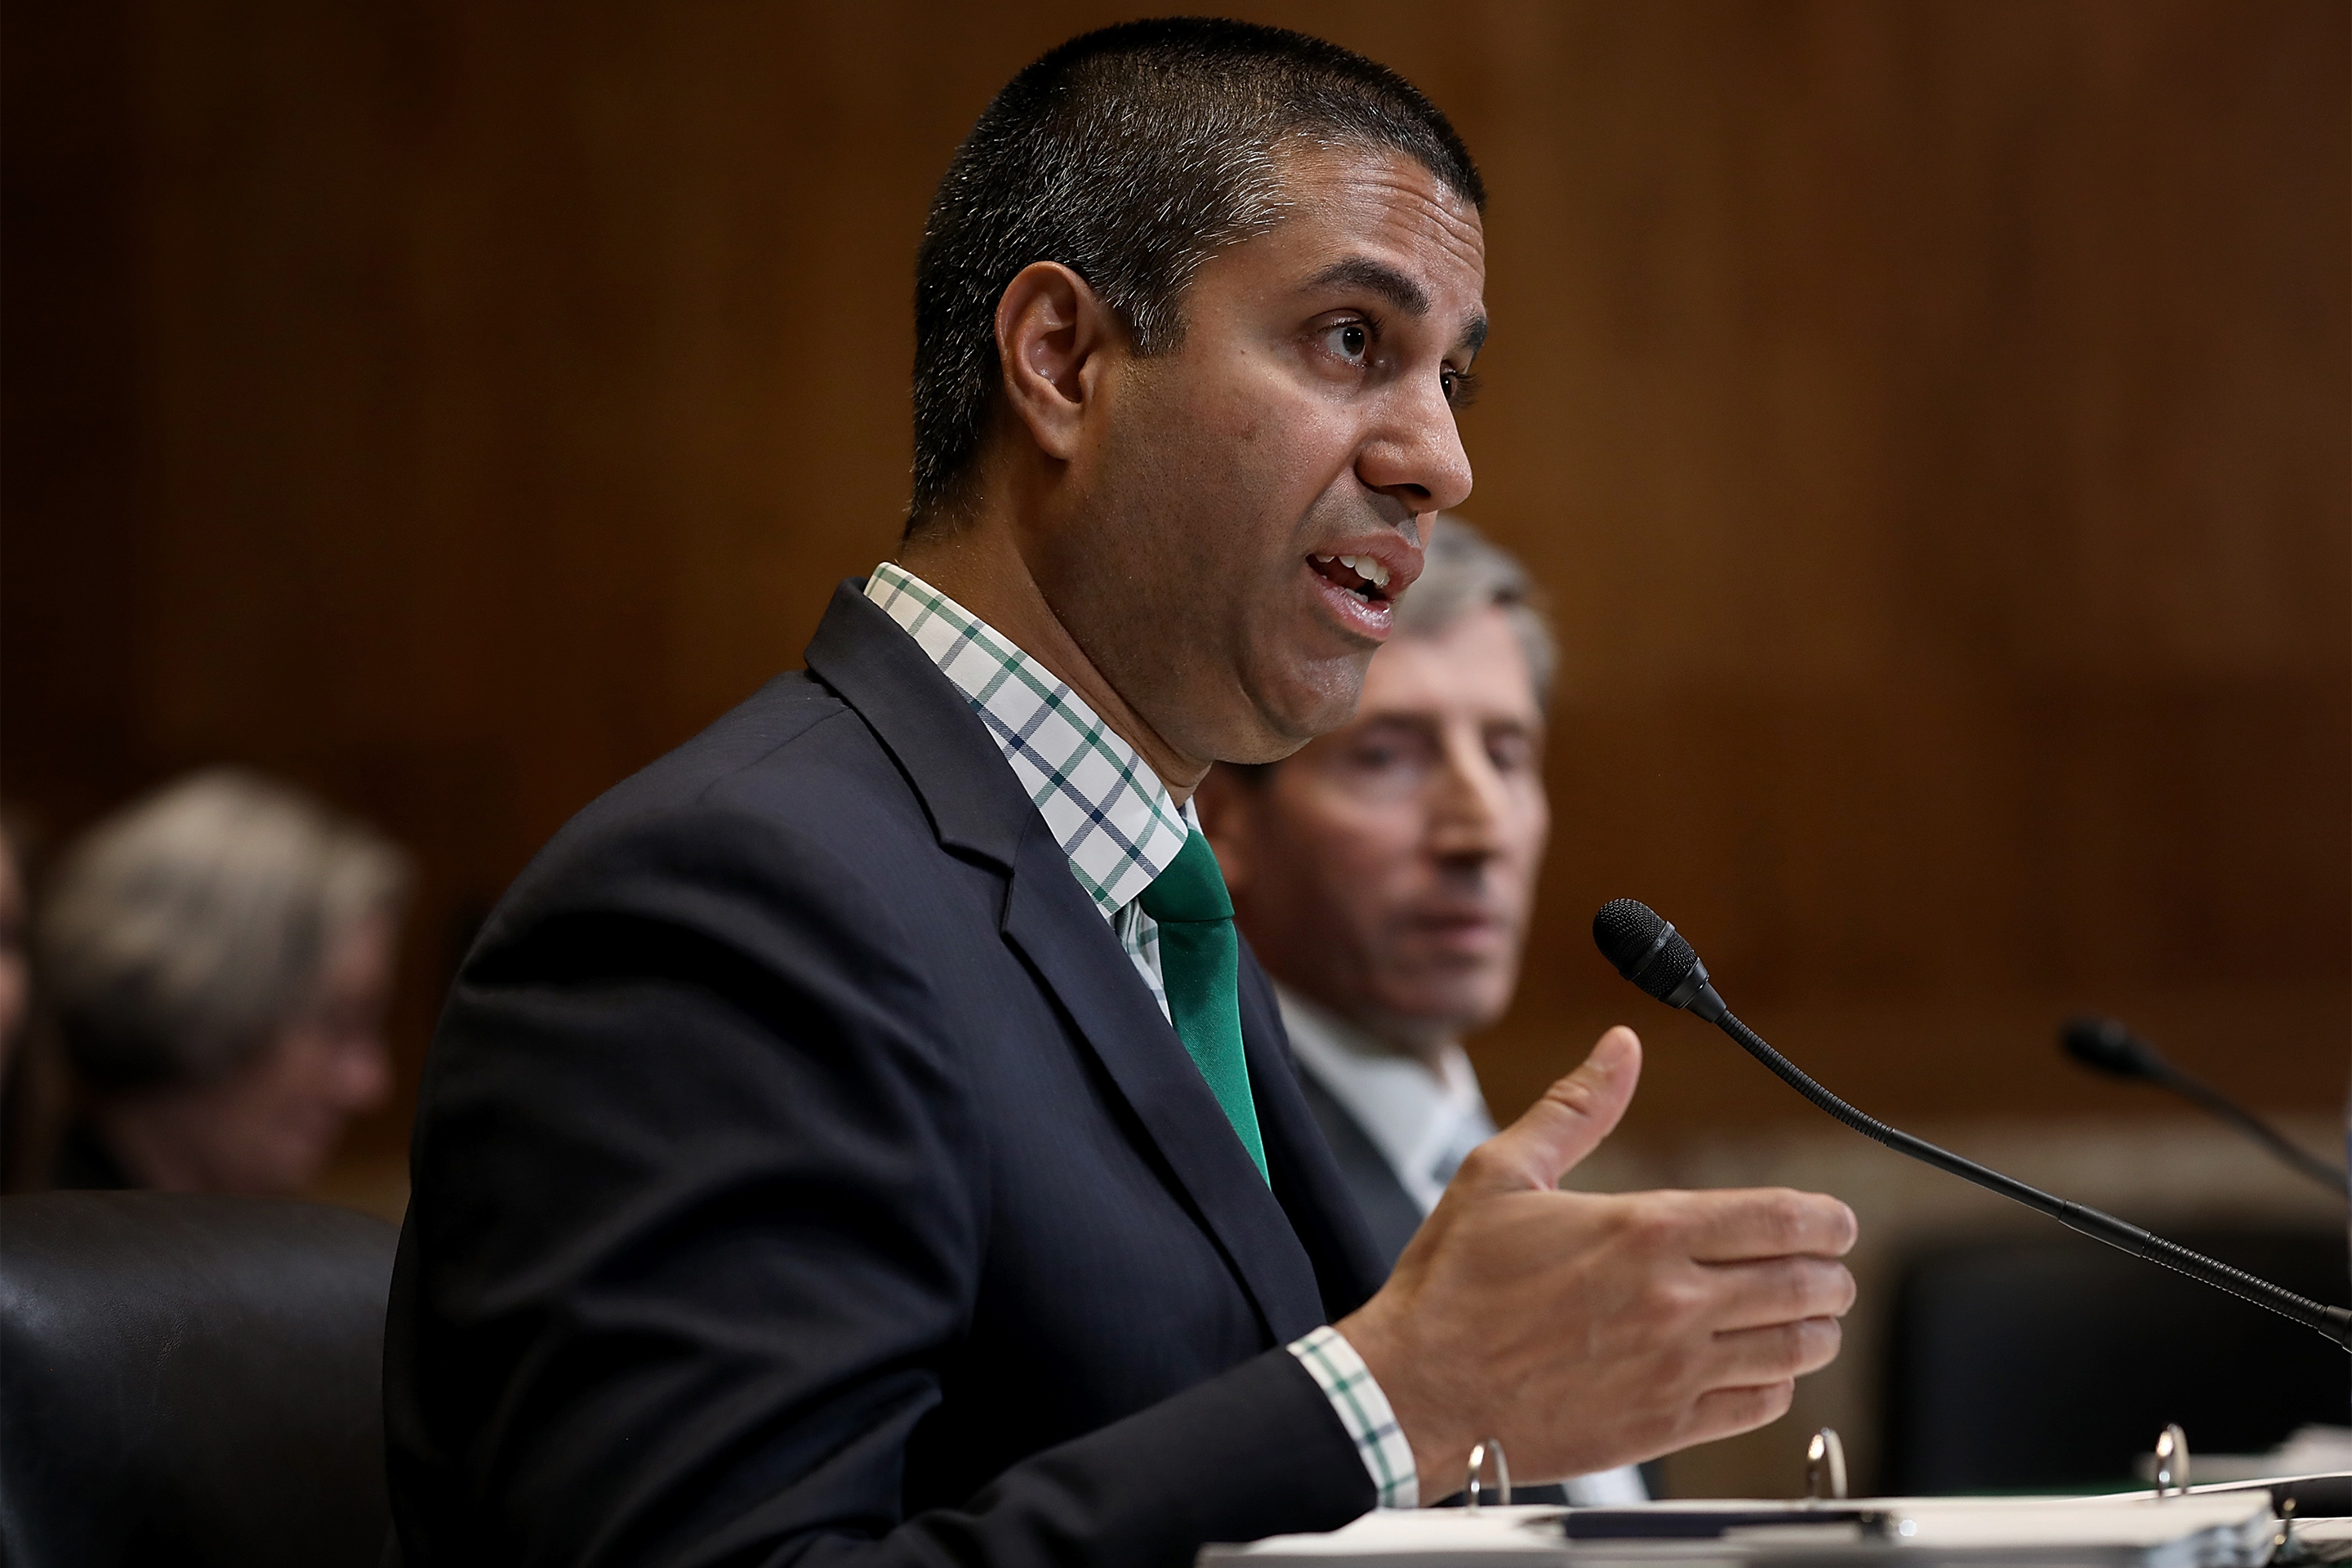 Want to File a Complaint With the FCC? It Could Cost You $225